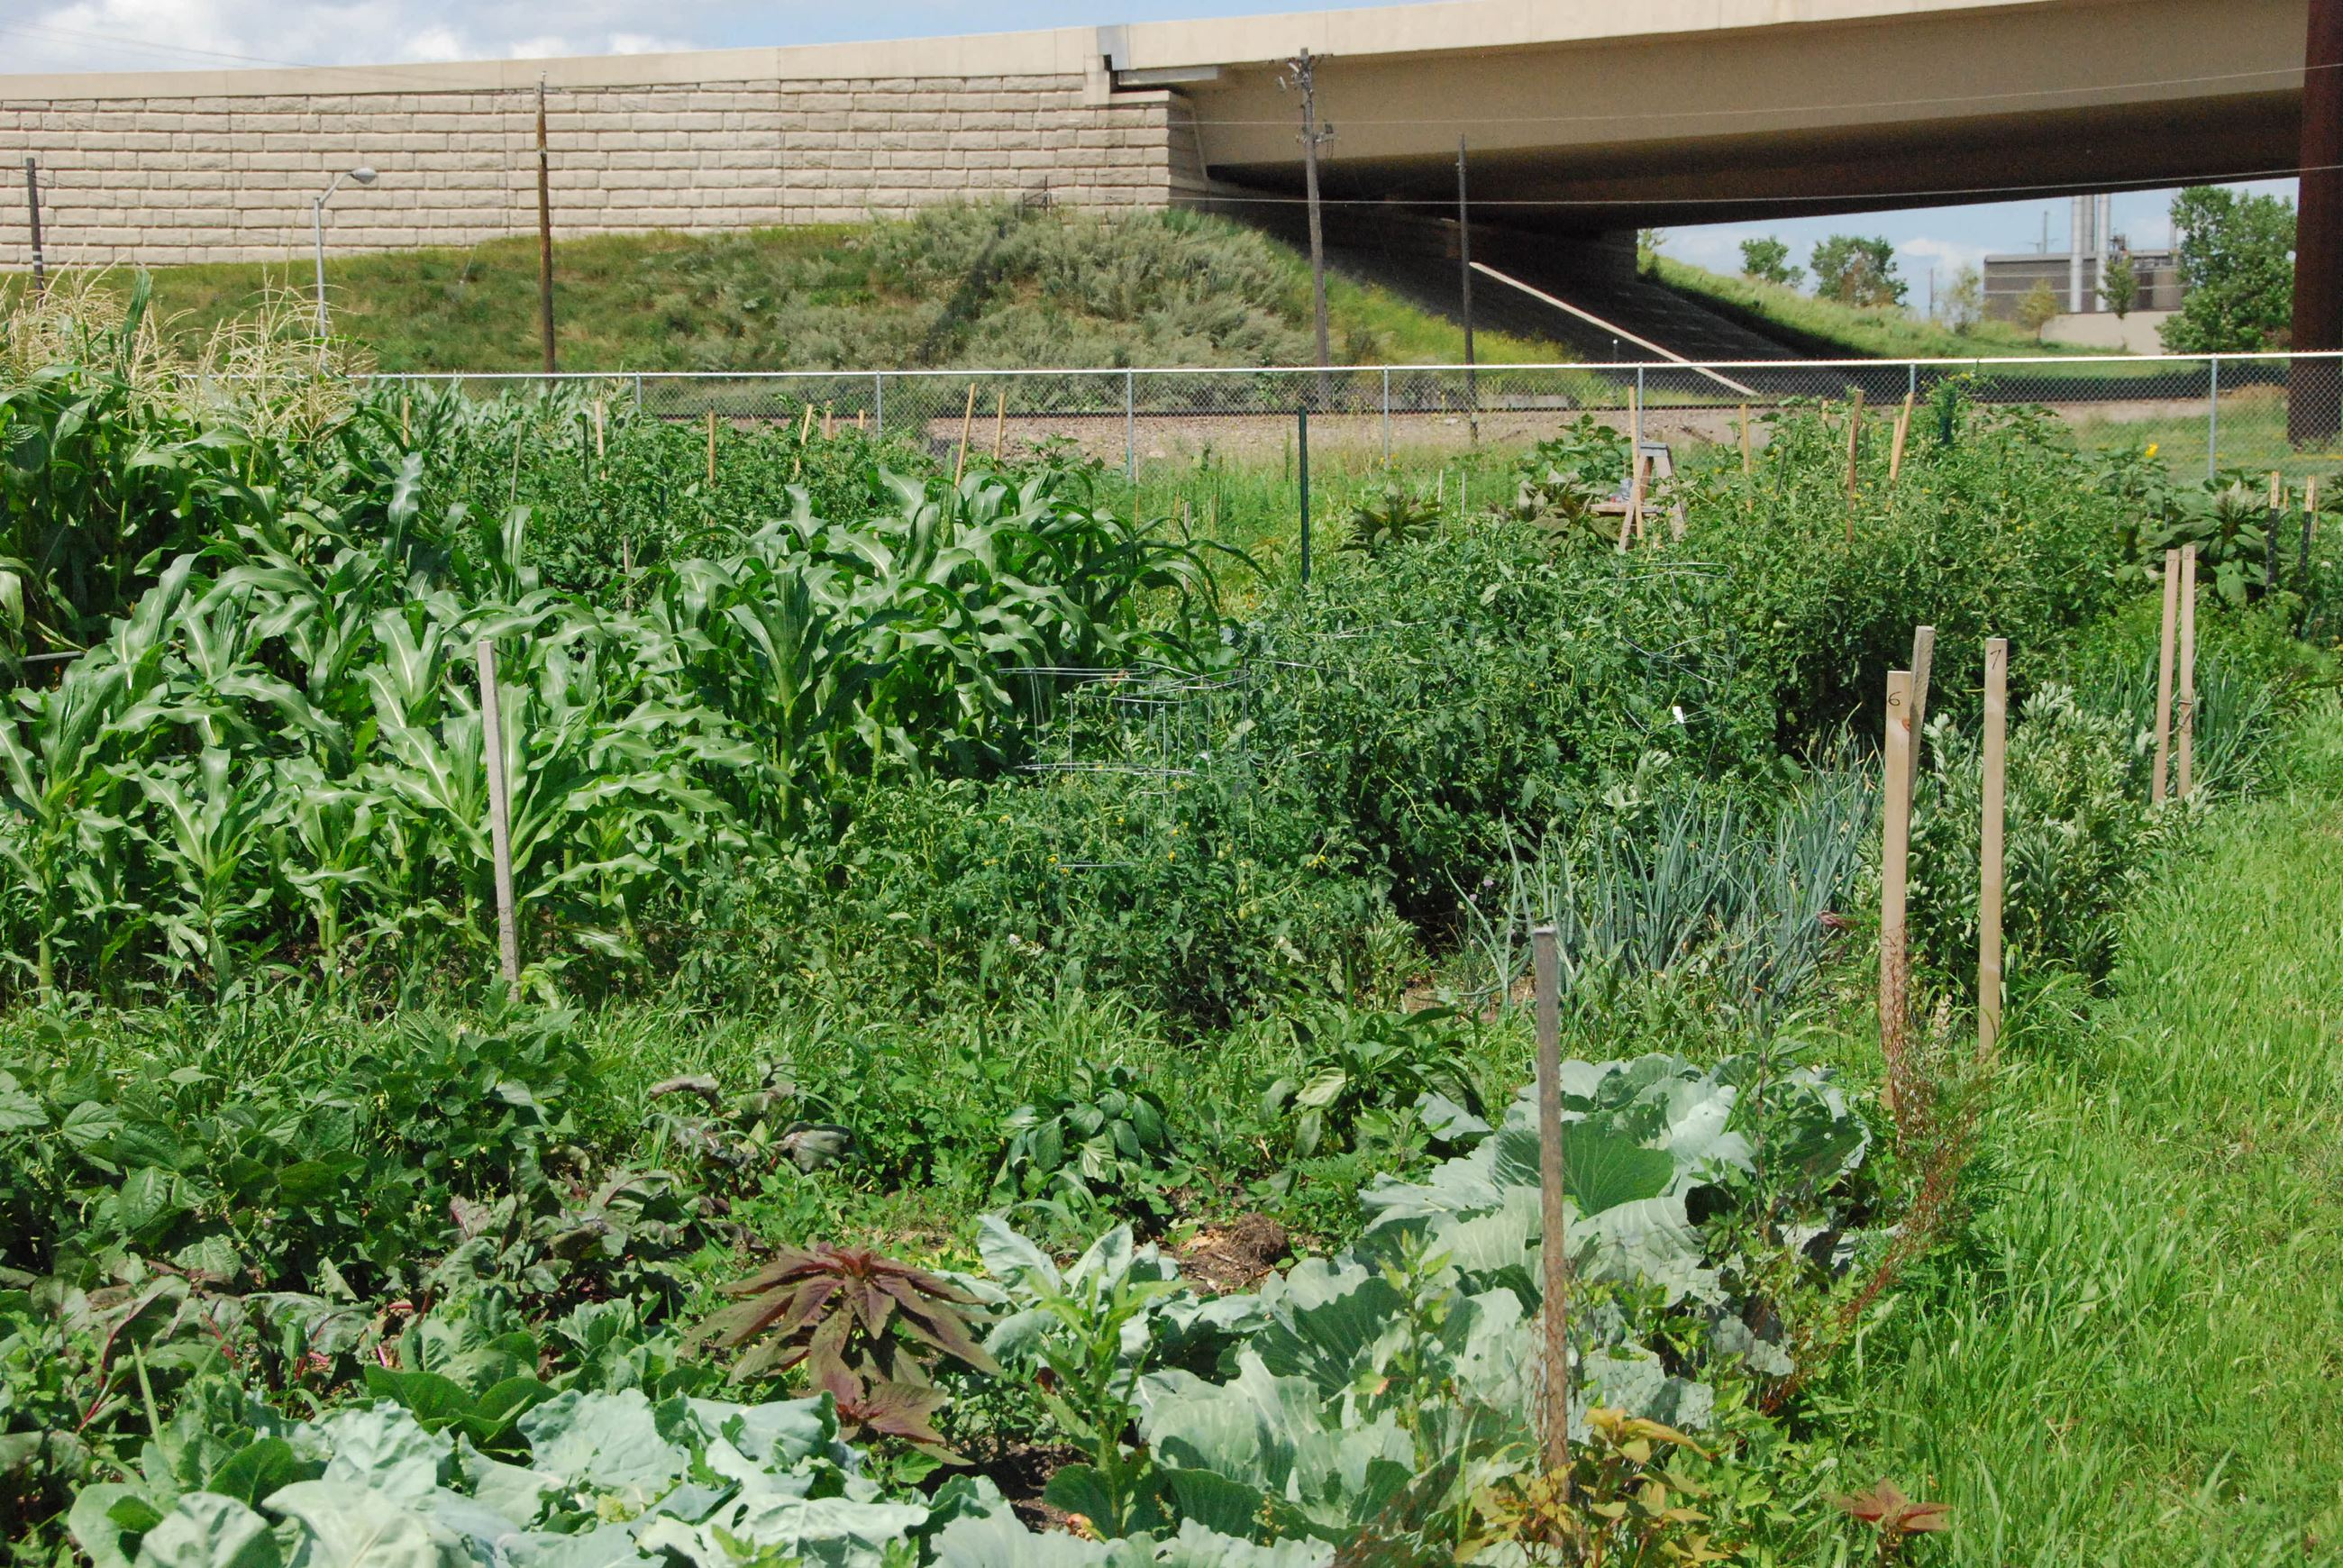 Community Garden plots with corn, lettuce plants.